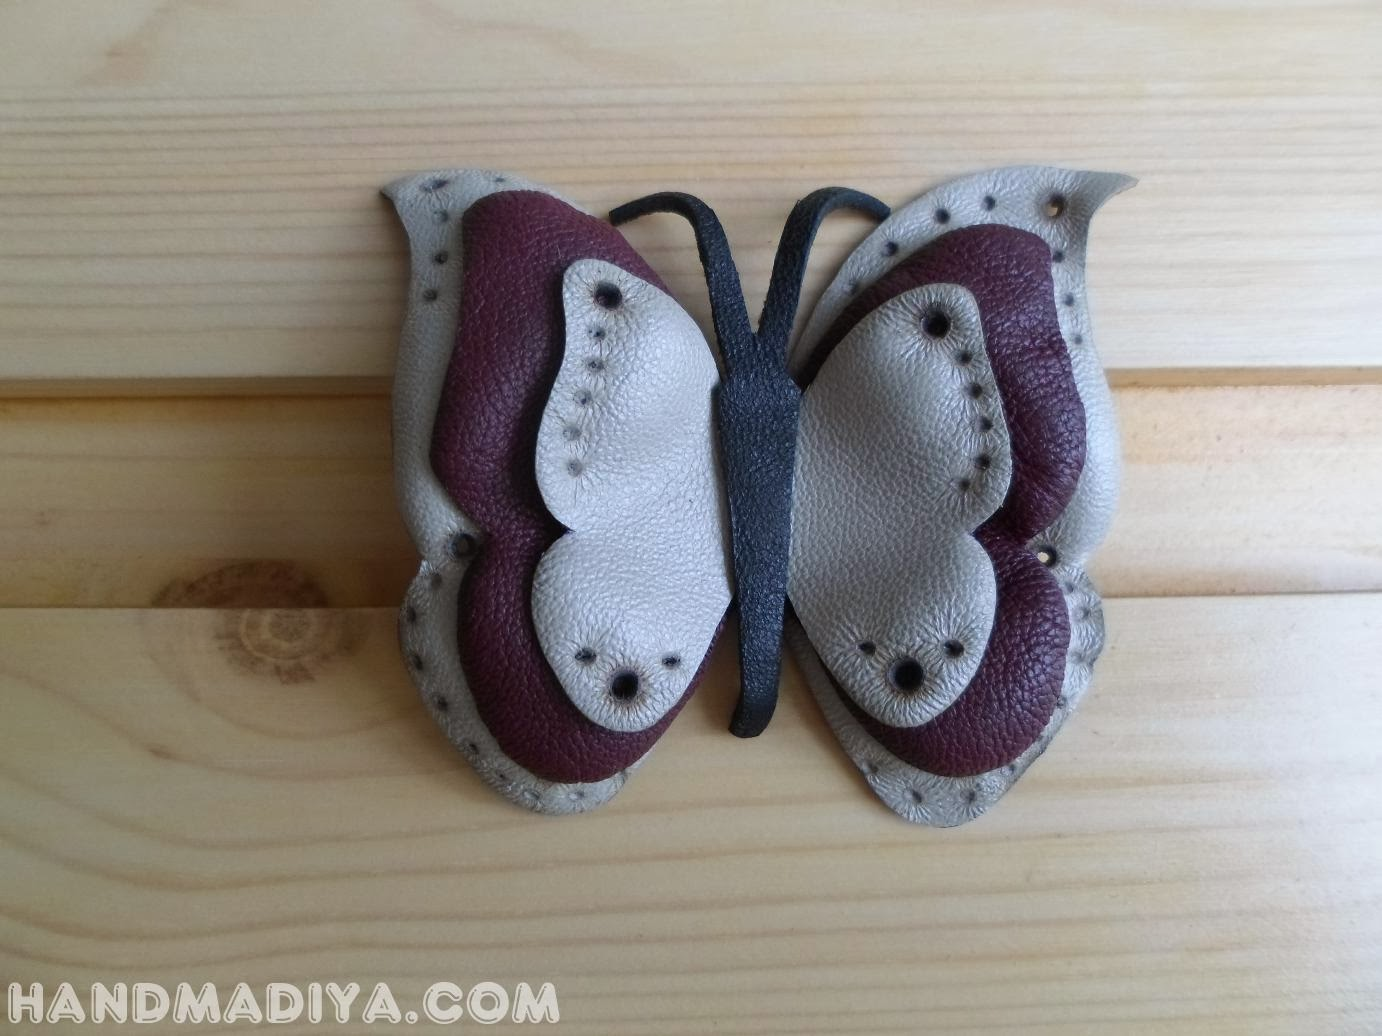 Barrette Butterfly leather DIY step-by-step tutorials